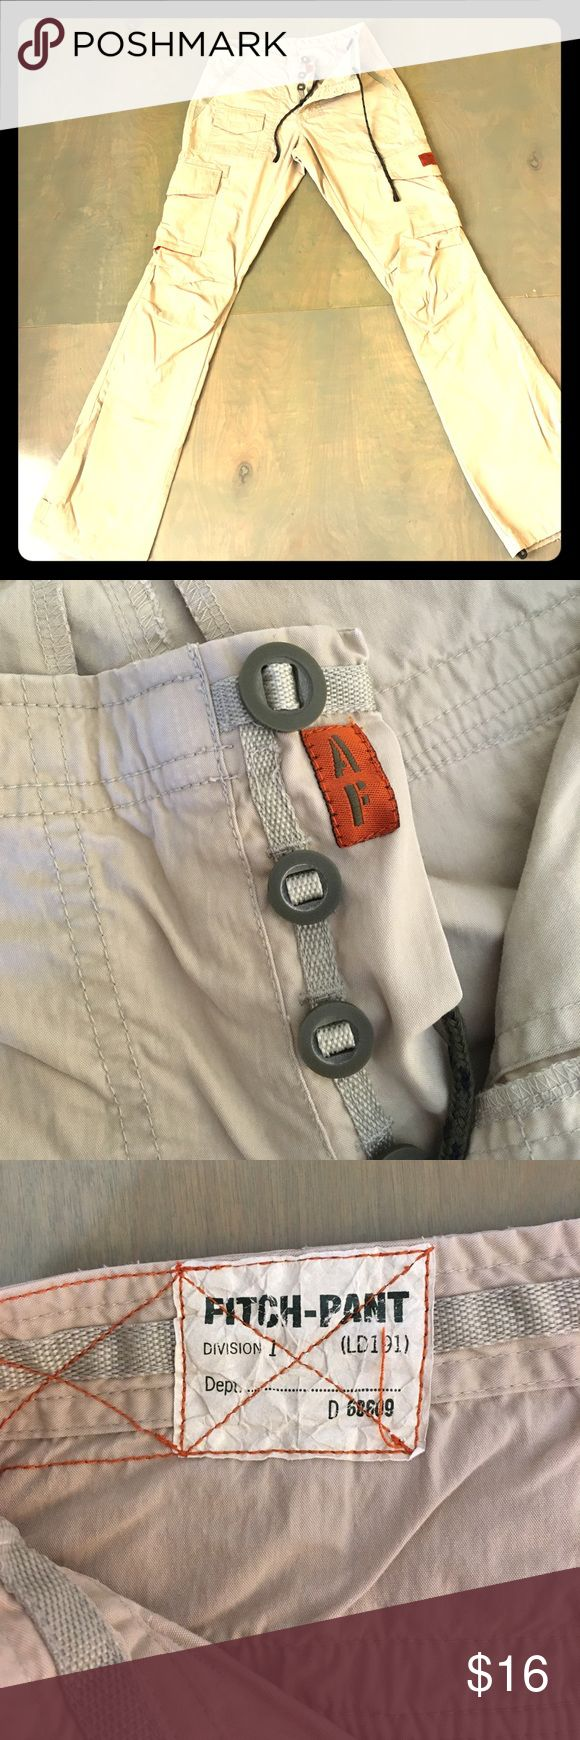 """Abercrombie & Fitch """"Fitch-Pant"""" Abercrombie & Fitch """"Fitch-Pant"""". Great for hiking. Many pockets. Draw string waist and leg bottoms. Wear on leg bottoms from hiking and jumping puddles 🍁 Abercrombie & Fitch Pants Trousers"""